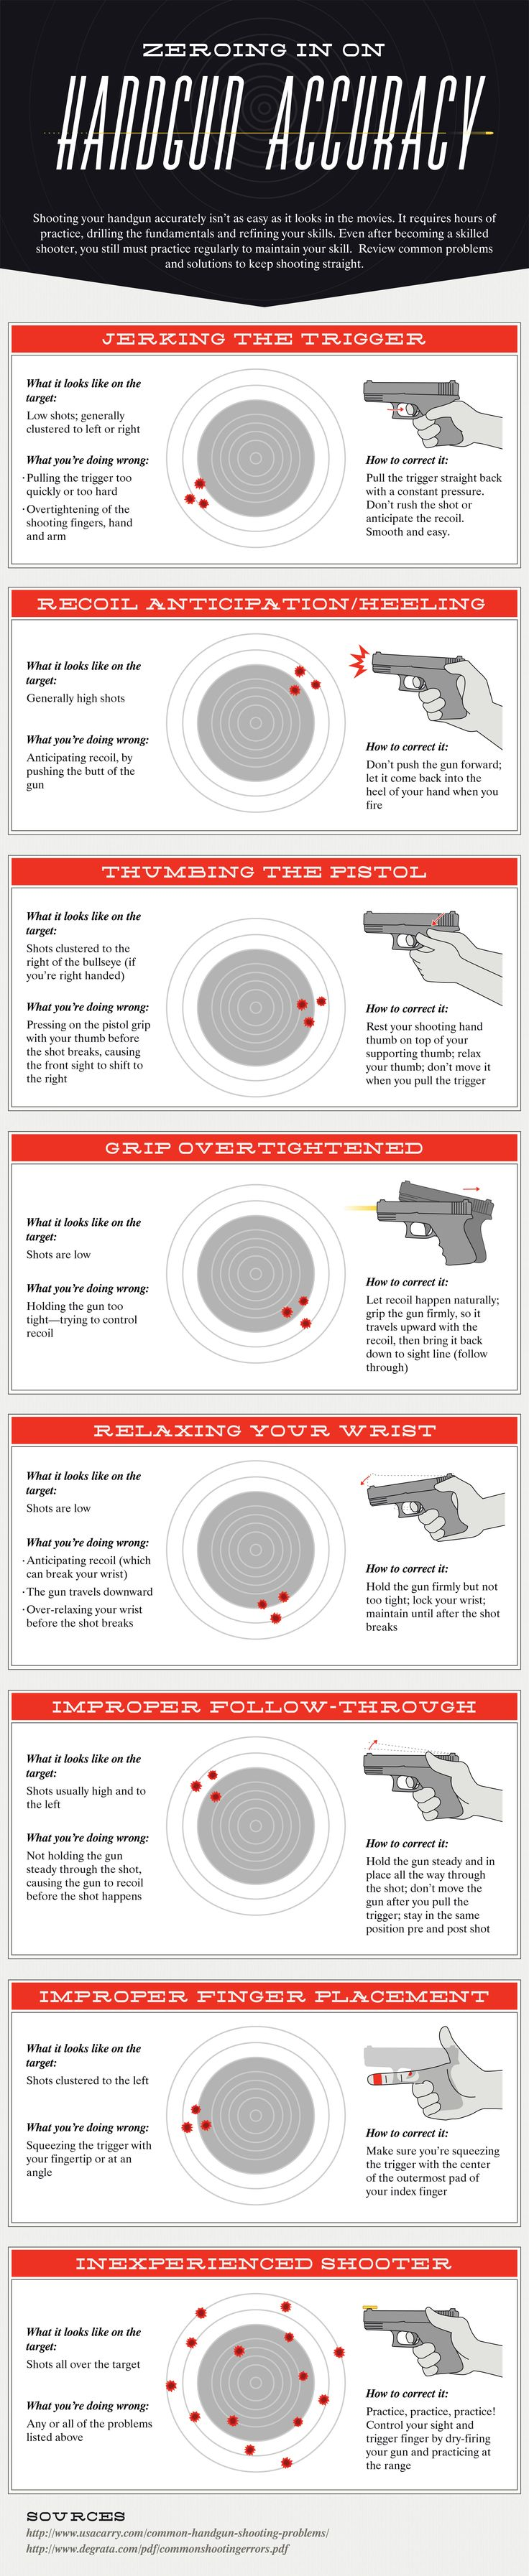 Handgun Accuracy (infographic) American Preppers Network …